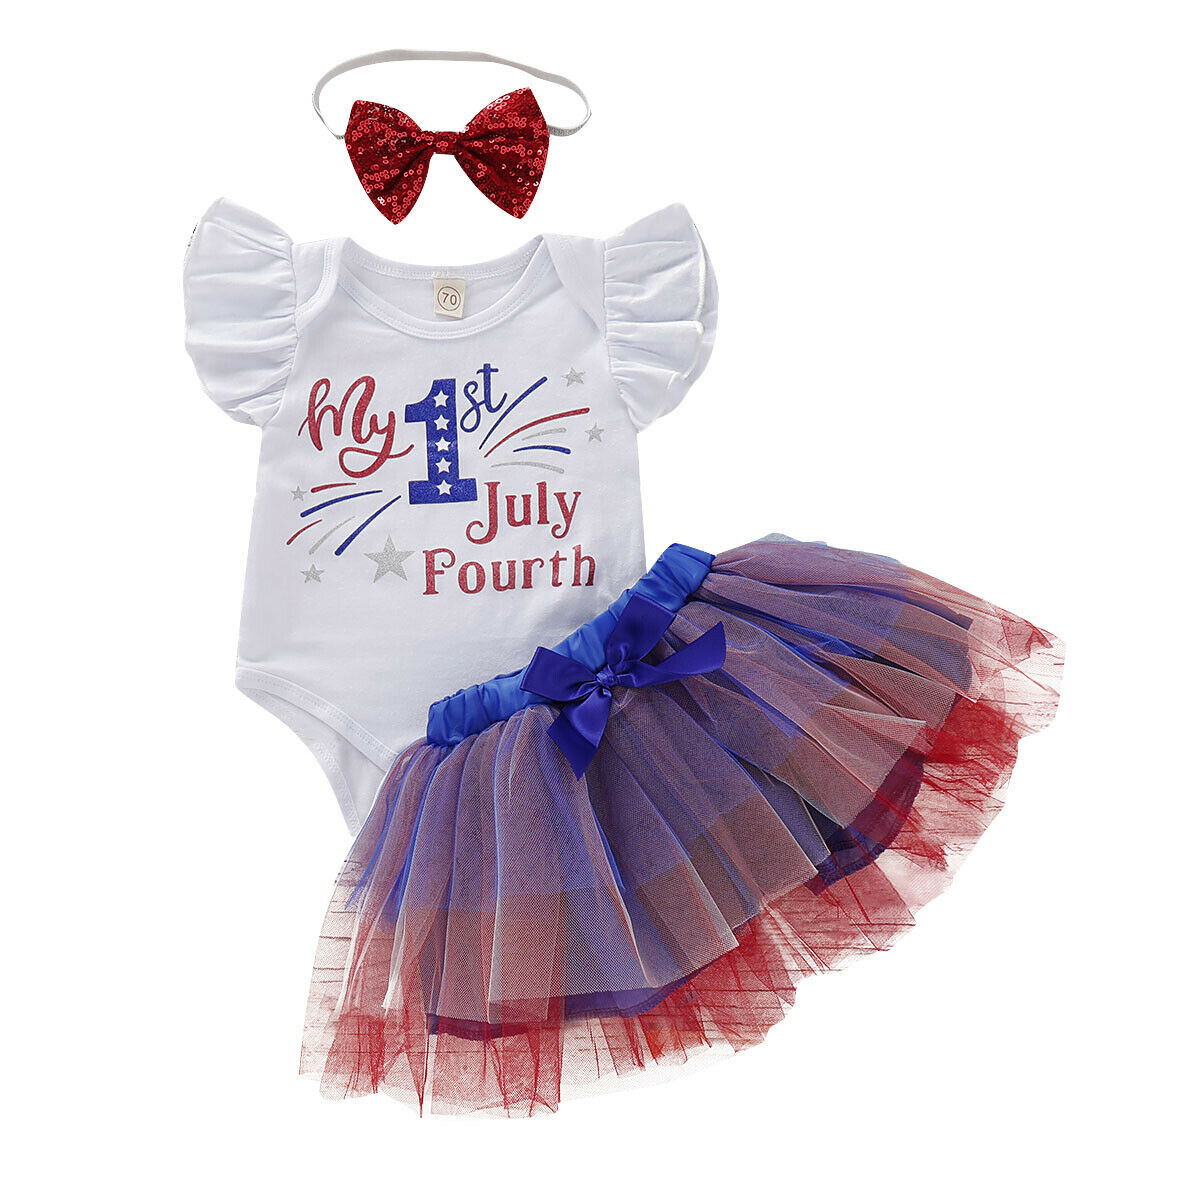 Infant Baby Girl Kids Ruffle Lace 4th Of July Sleeveless Romper Jumpsuit Outfit